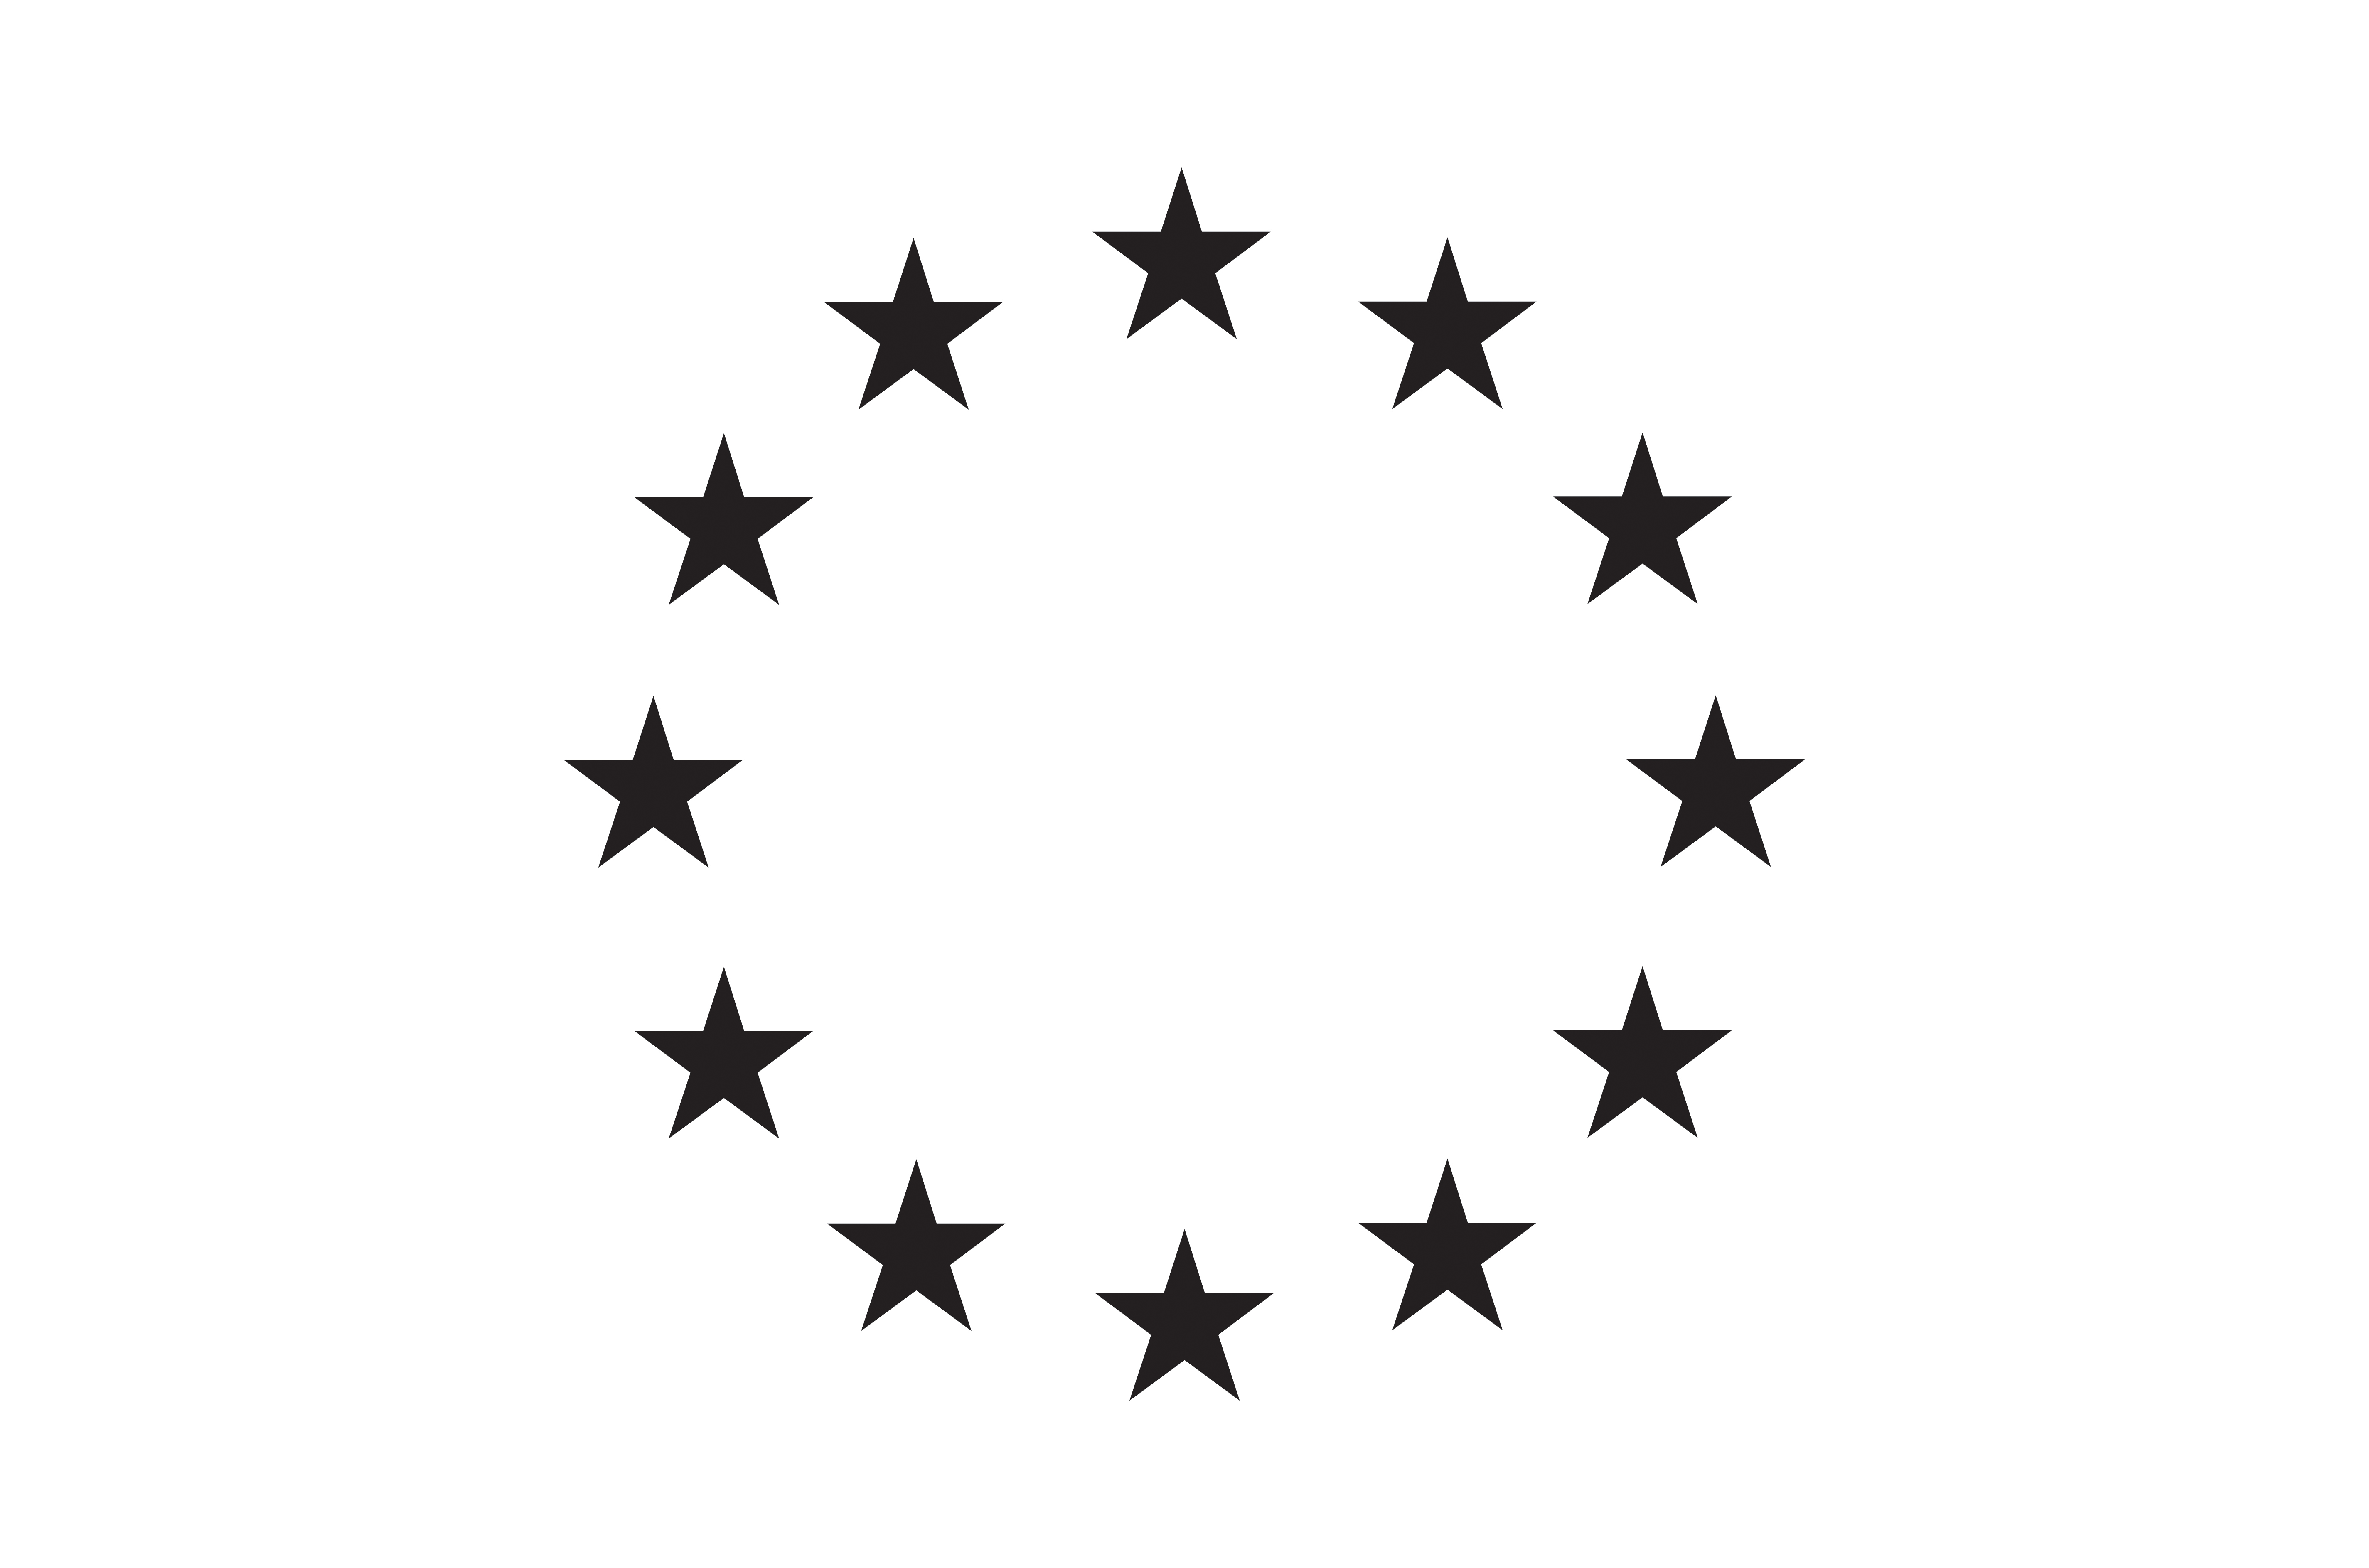 Black and white clipart of stars in circle clip art library download The European flag | European Union clip art library download